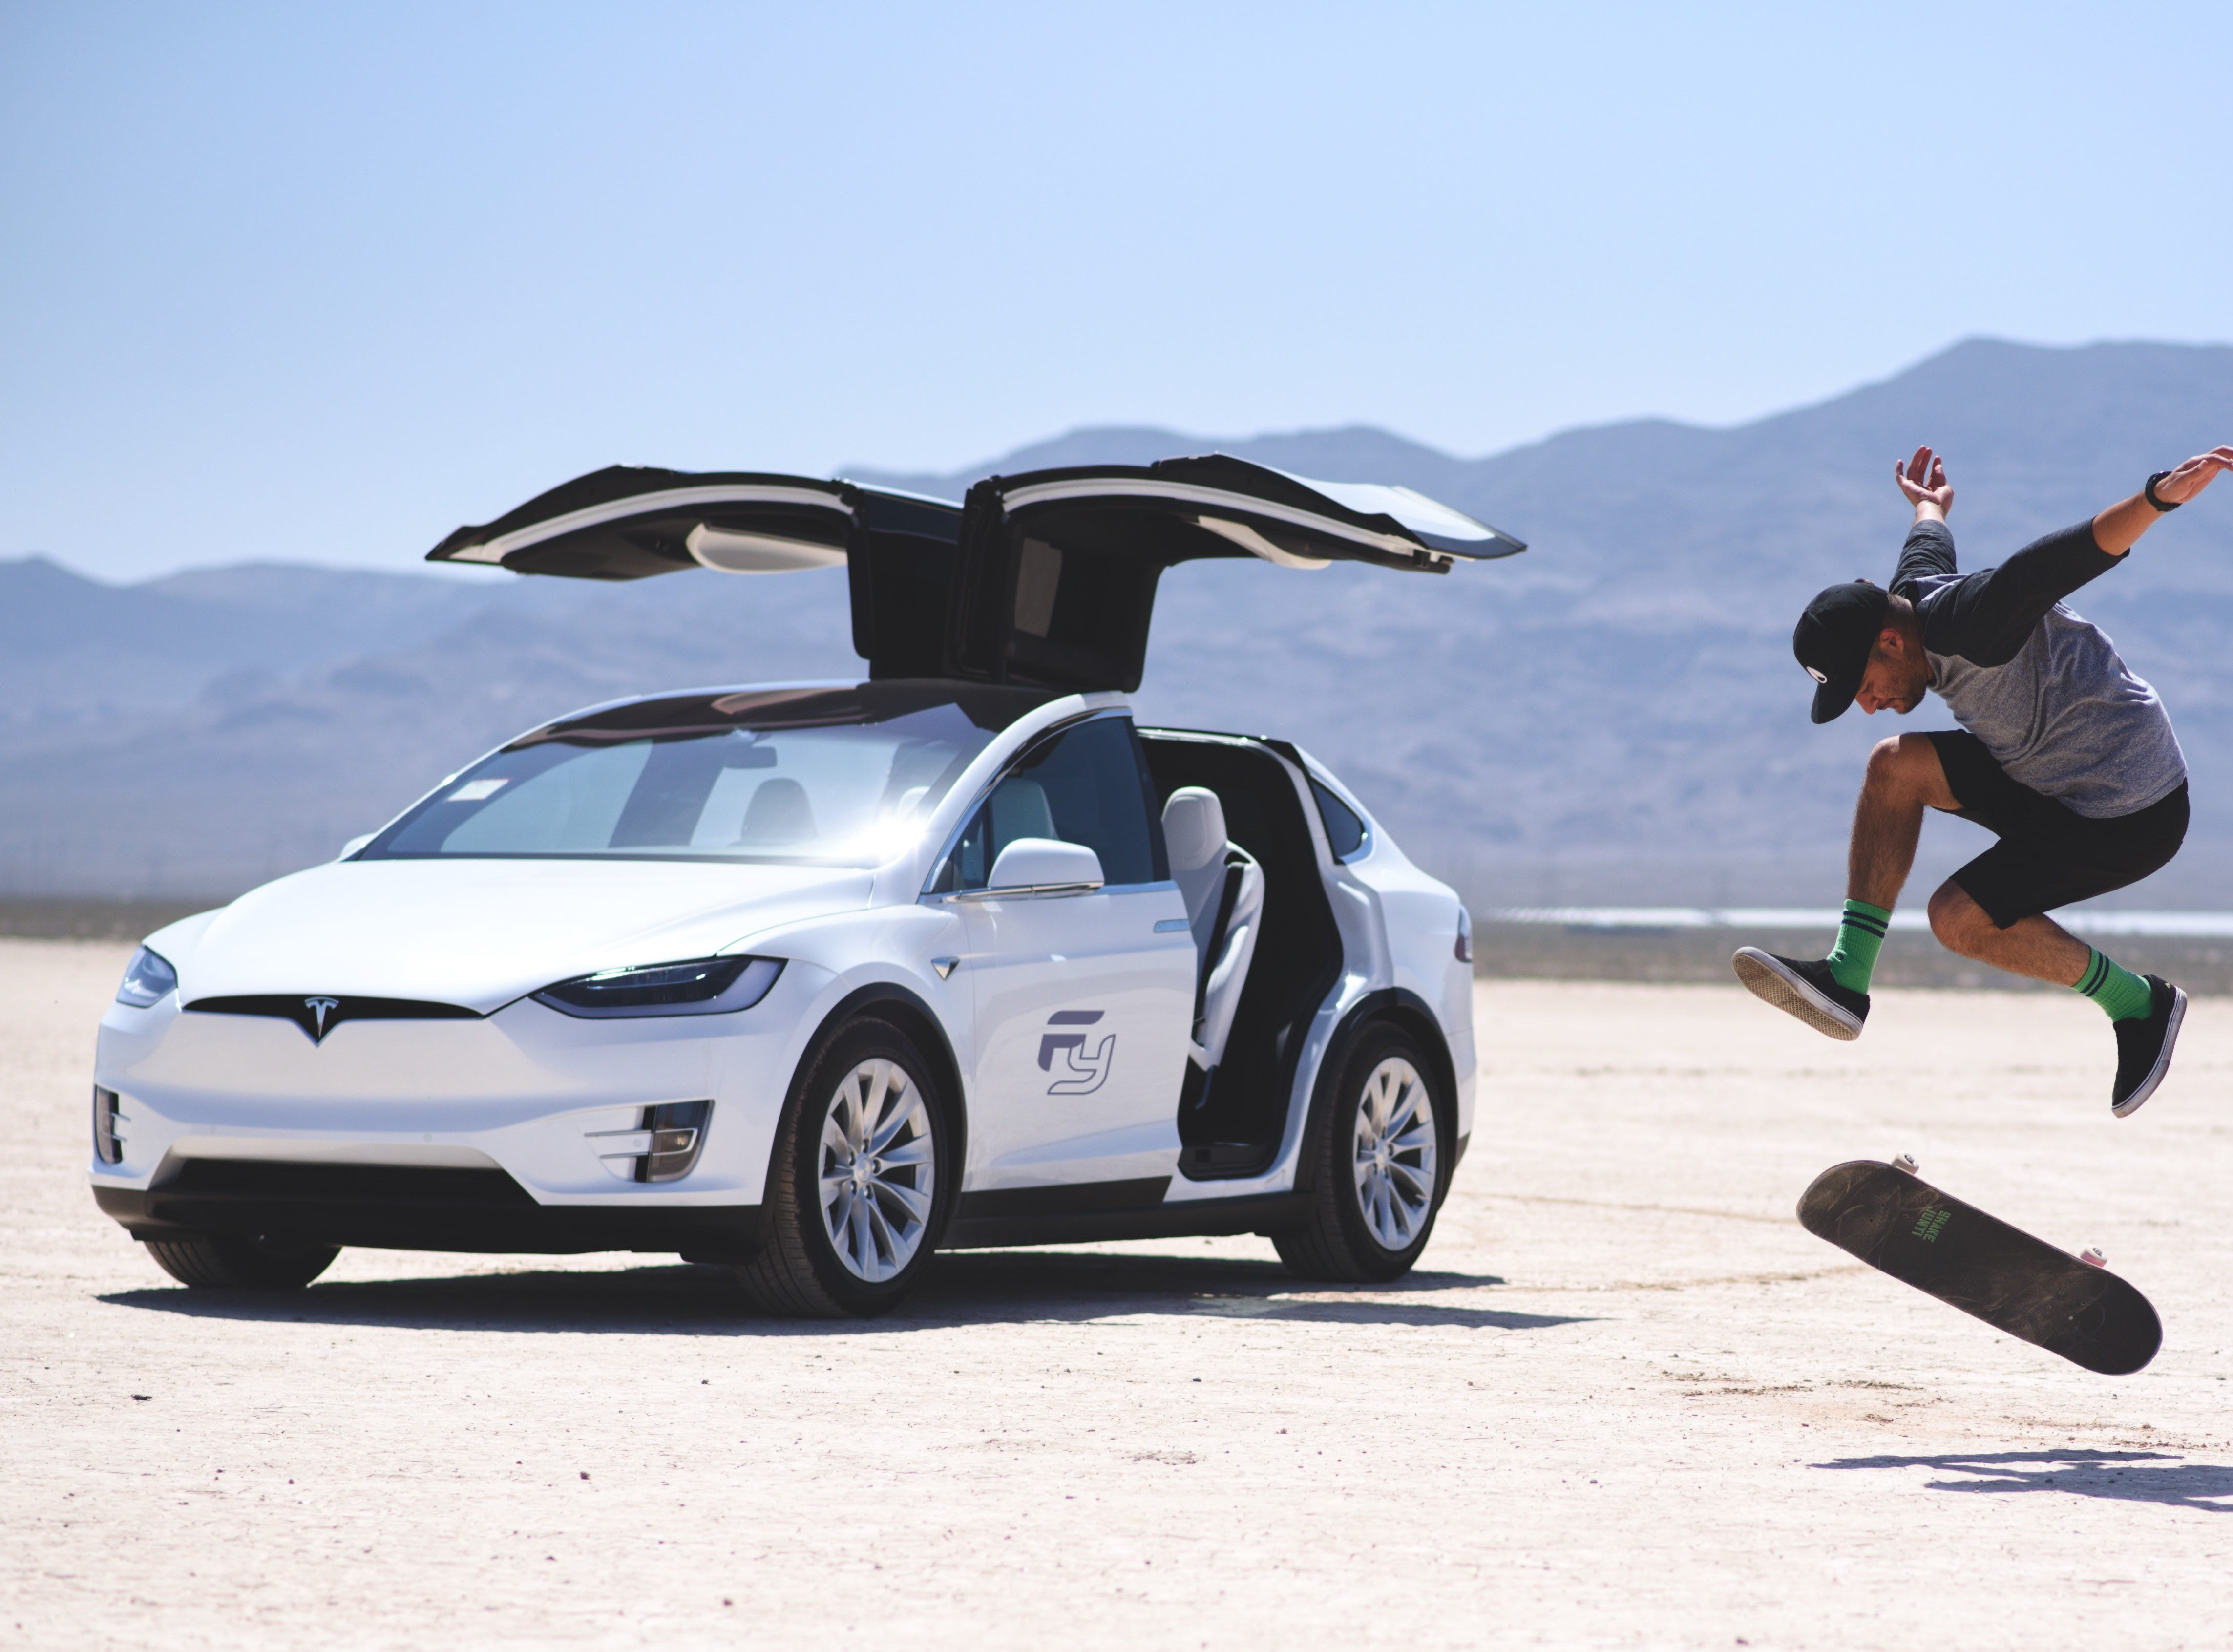 Min and Chad Hurin figured out a way to afford to buy their Teslas -- rent them out, airbnb style. Their company, Frunk Yea, has a fleet -- an S, a 3 and an X -- and are based in San Diego and Tampa.